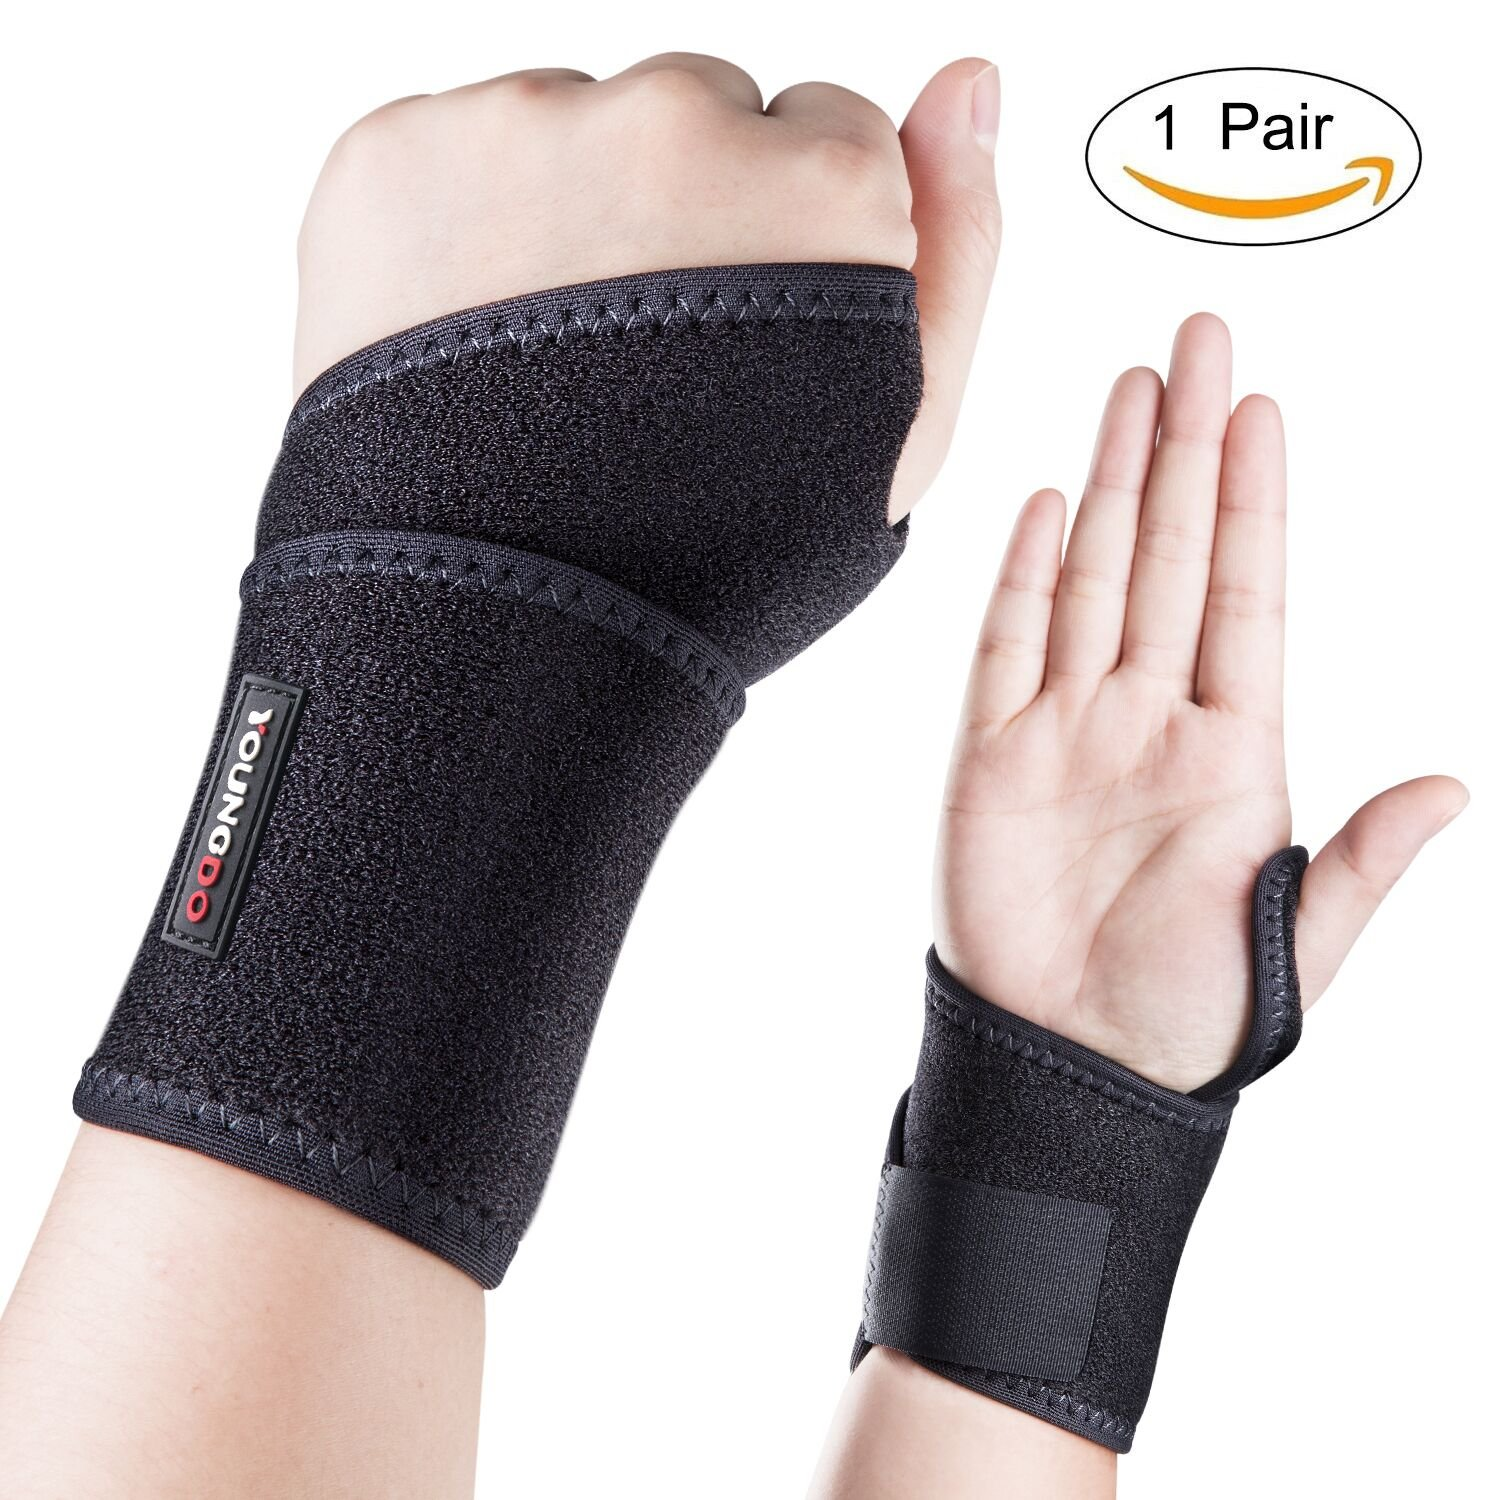 "Sports Wrist Brace, Youngdo 5-7"" Adjustable Wrist Support Wraps with Thumb Loops for Men & Women, Ideal for Tennis Basketball Badminton Volleyball Cycling Gym Fitness (1 Pair)"